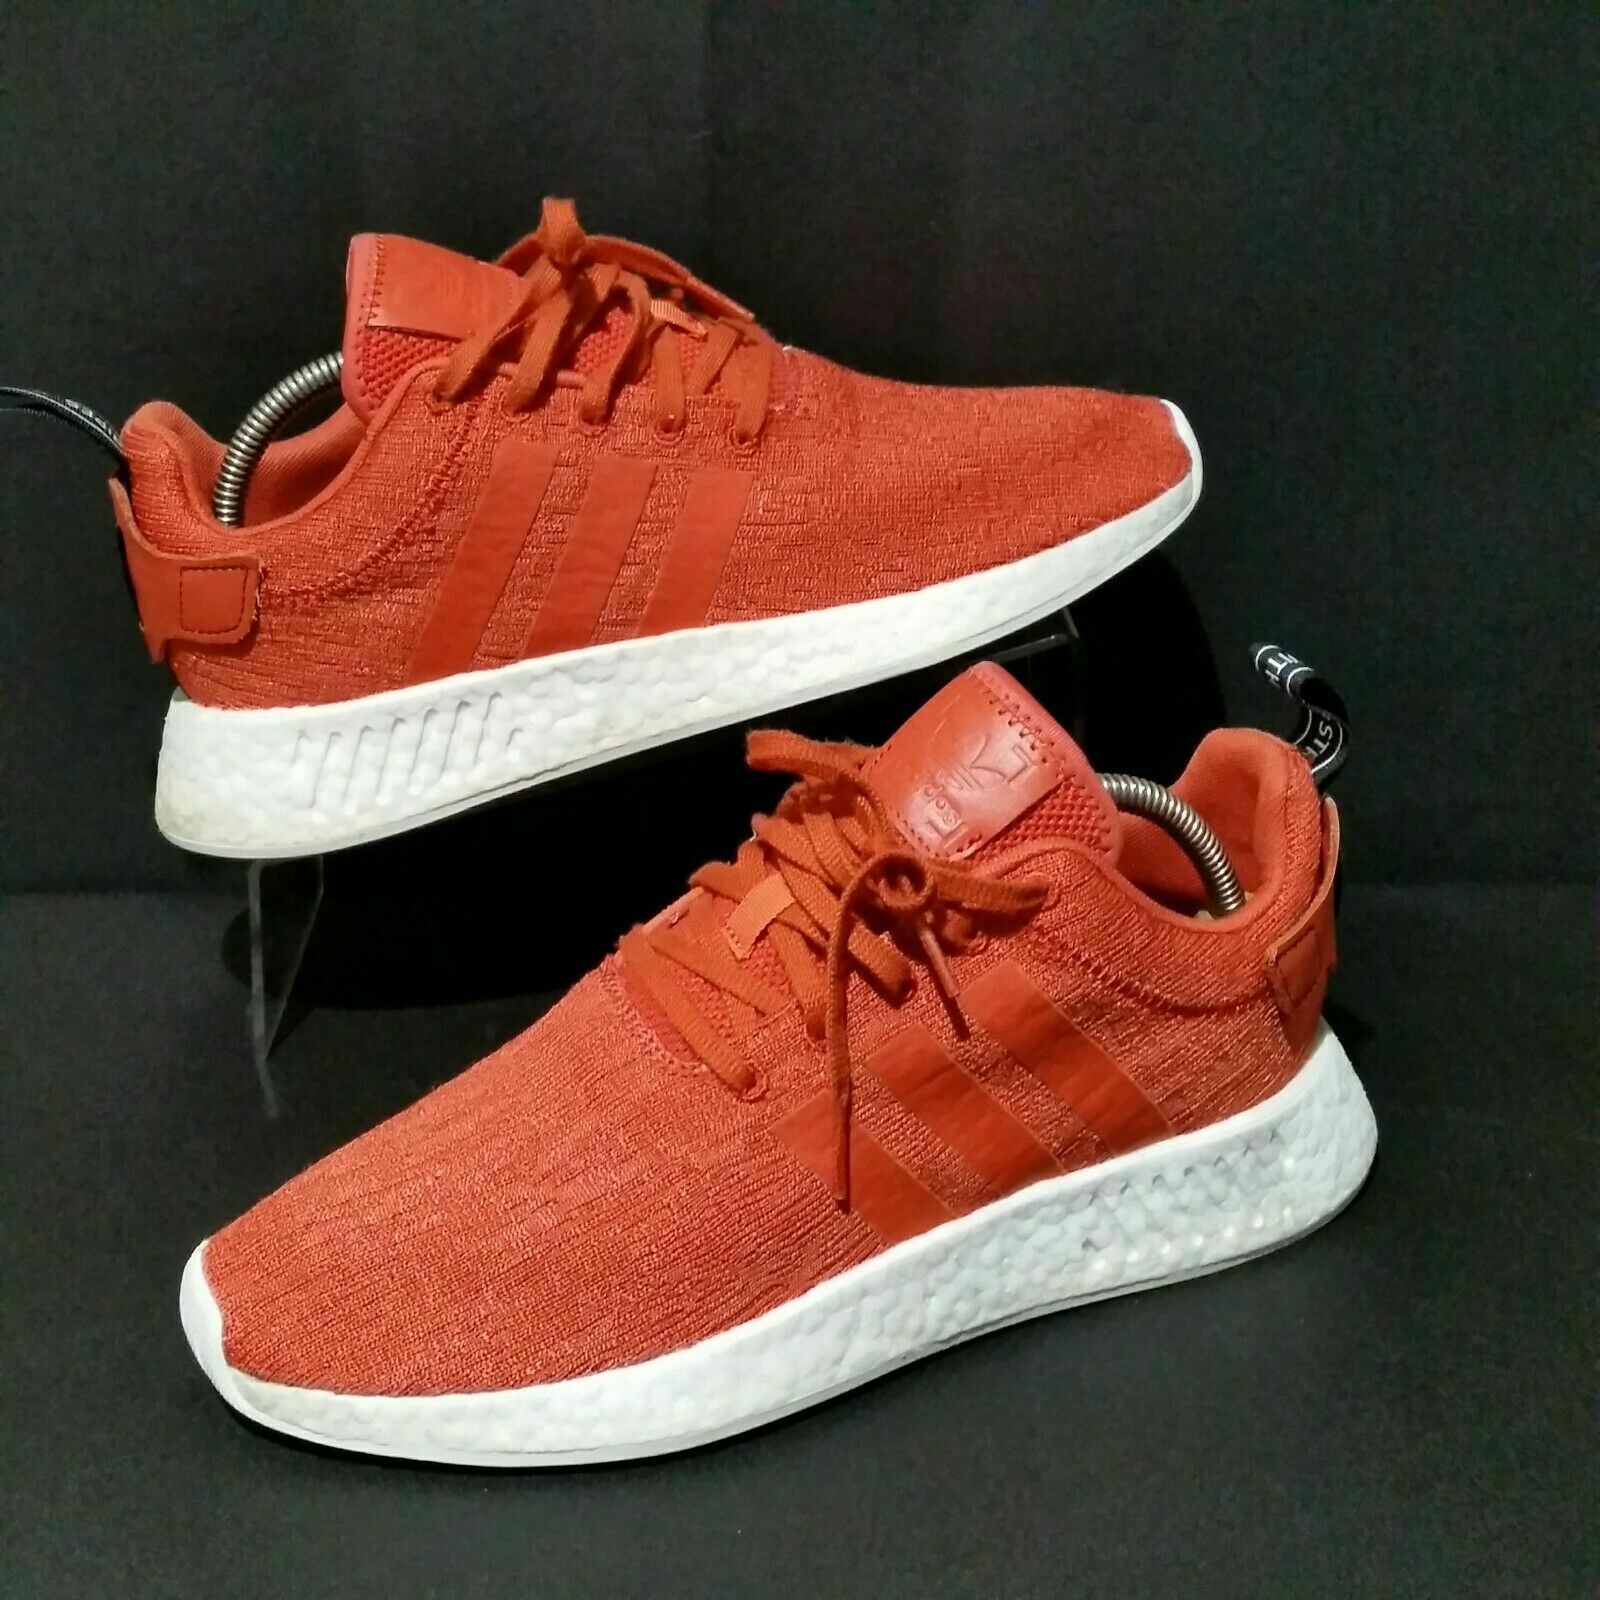 Adidas NMD R2 Future Harvest (Men's Size 10) Carred orange sneakers Ultra Boost